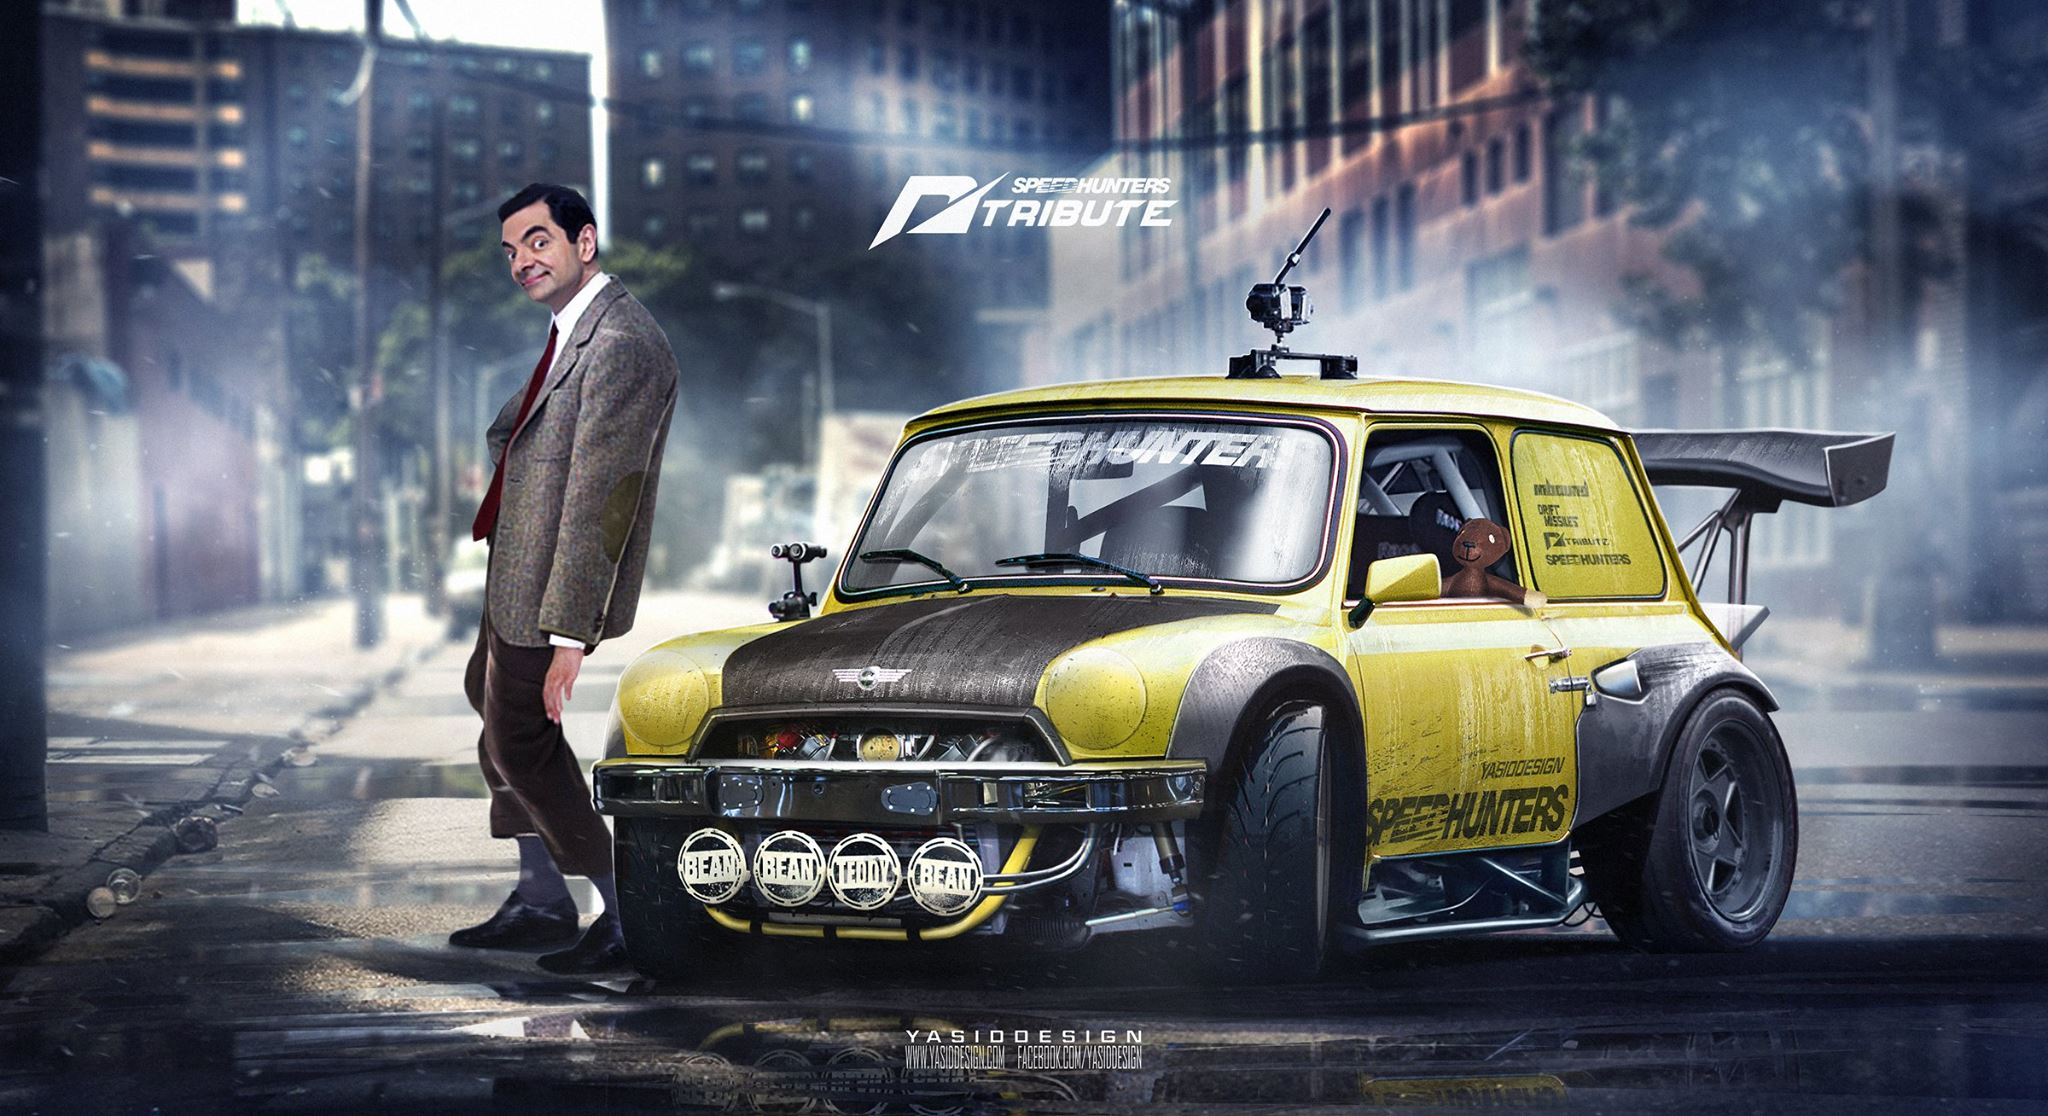 Mr Bean Mini Race Car NFS Theme Has Huge Spoiler - autoevolution